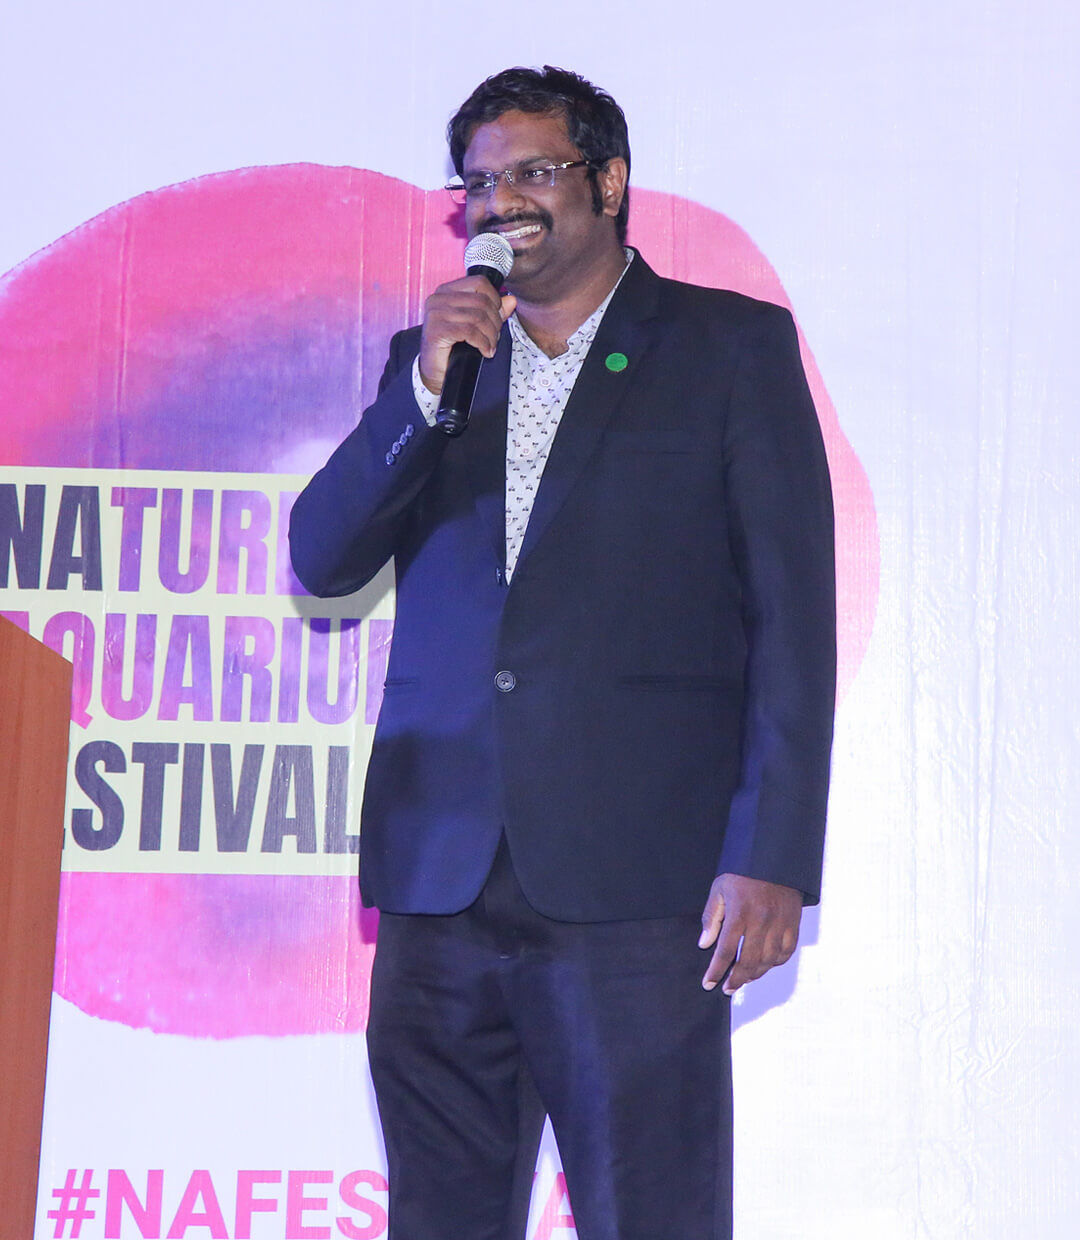 The Nature Aquarium Festival was held to celebrate the artistic expression of Nature – Aquascaping in India